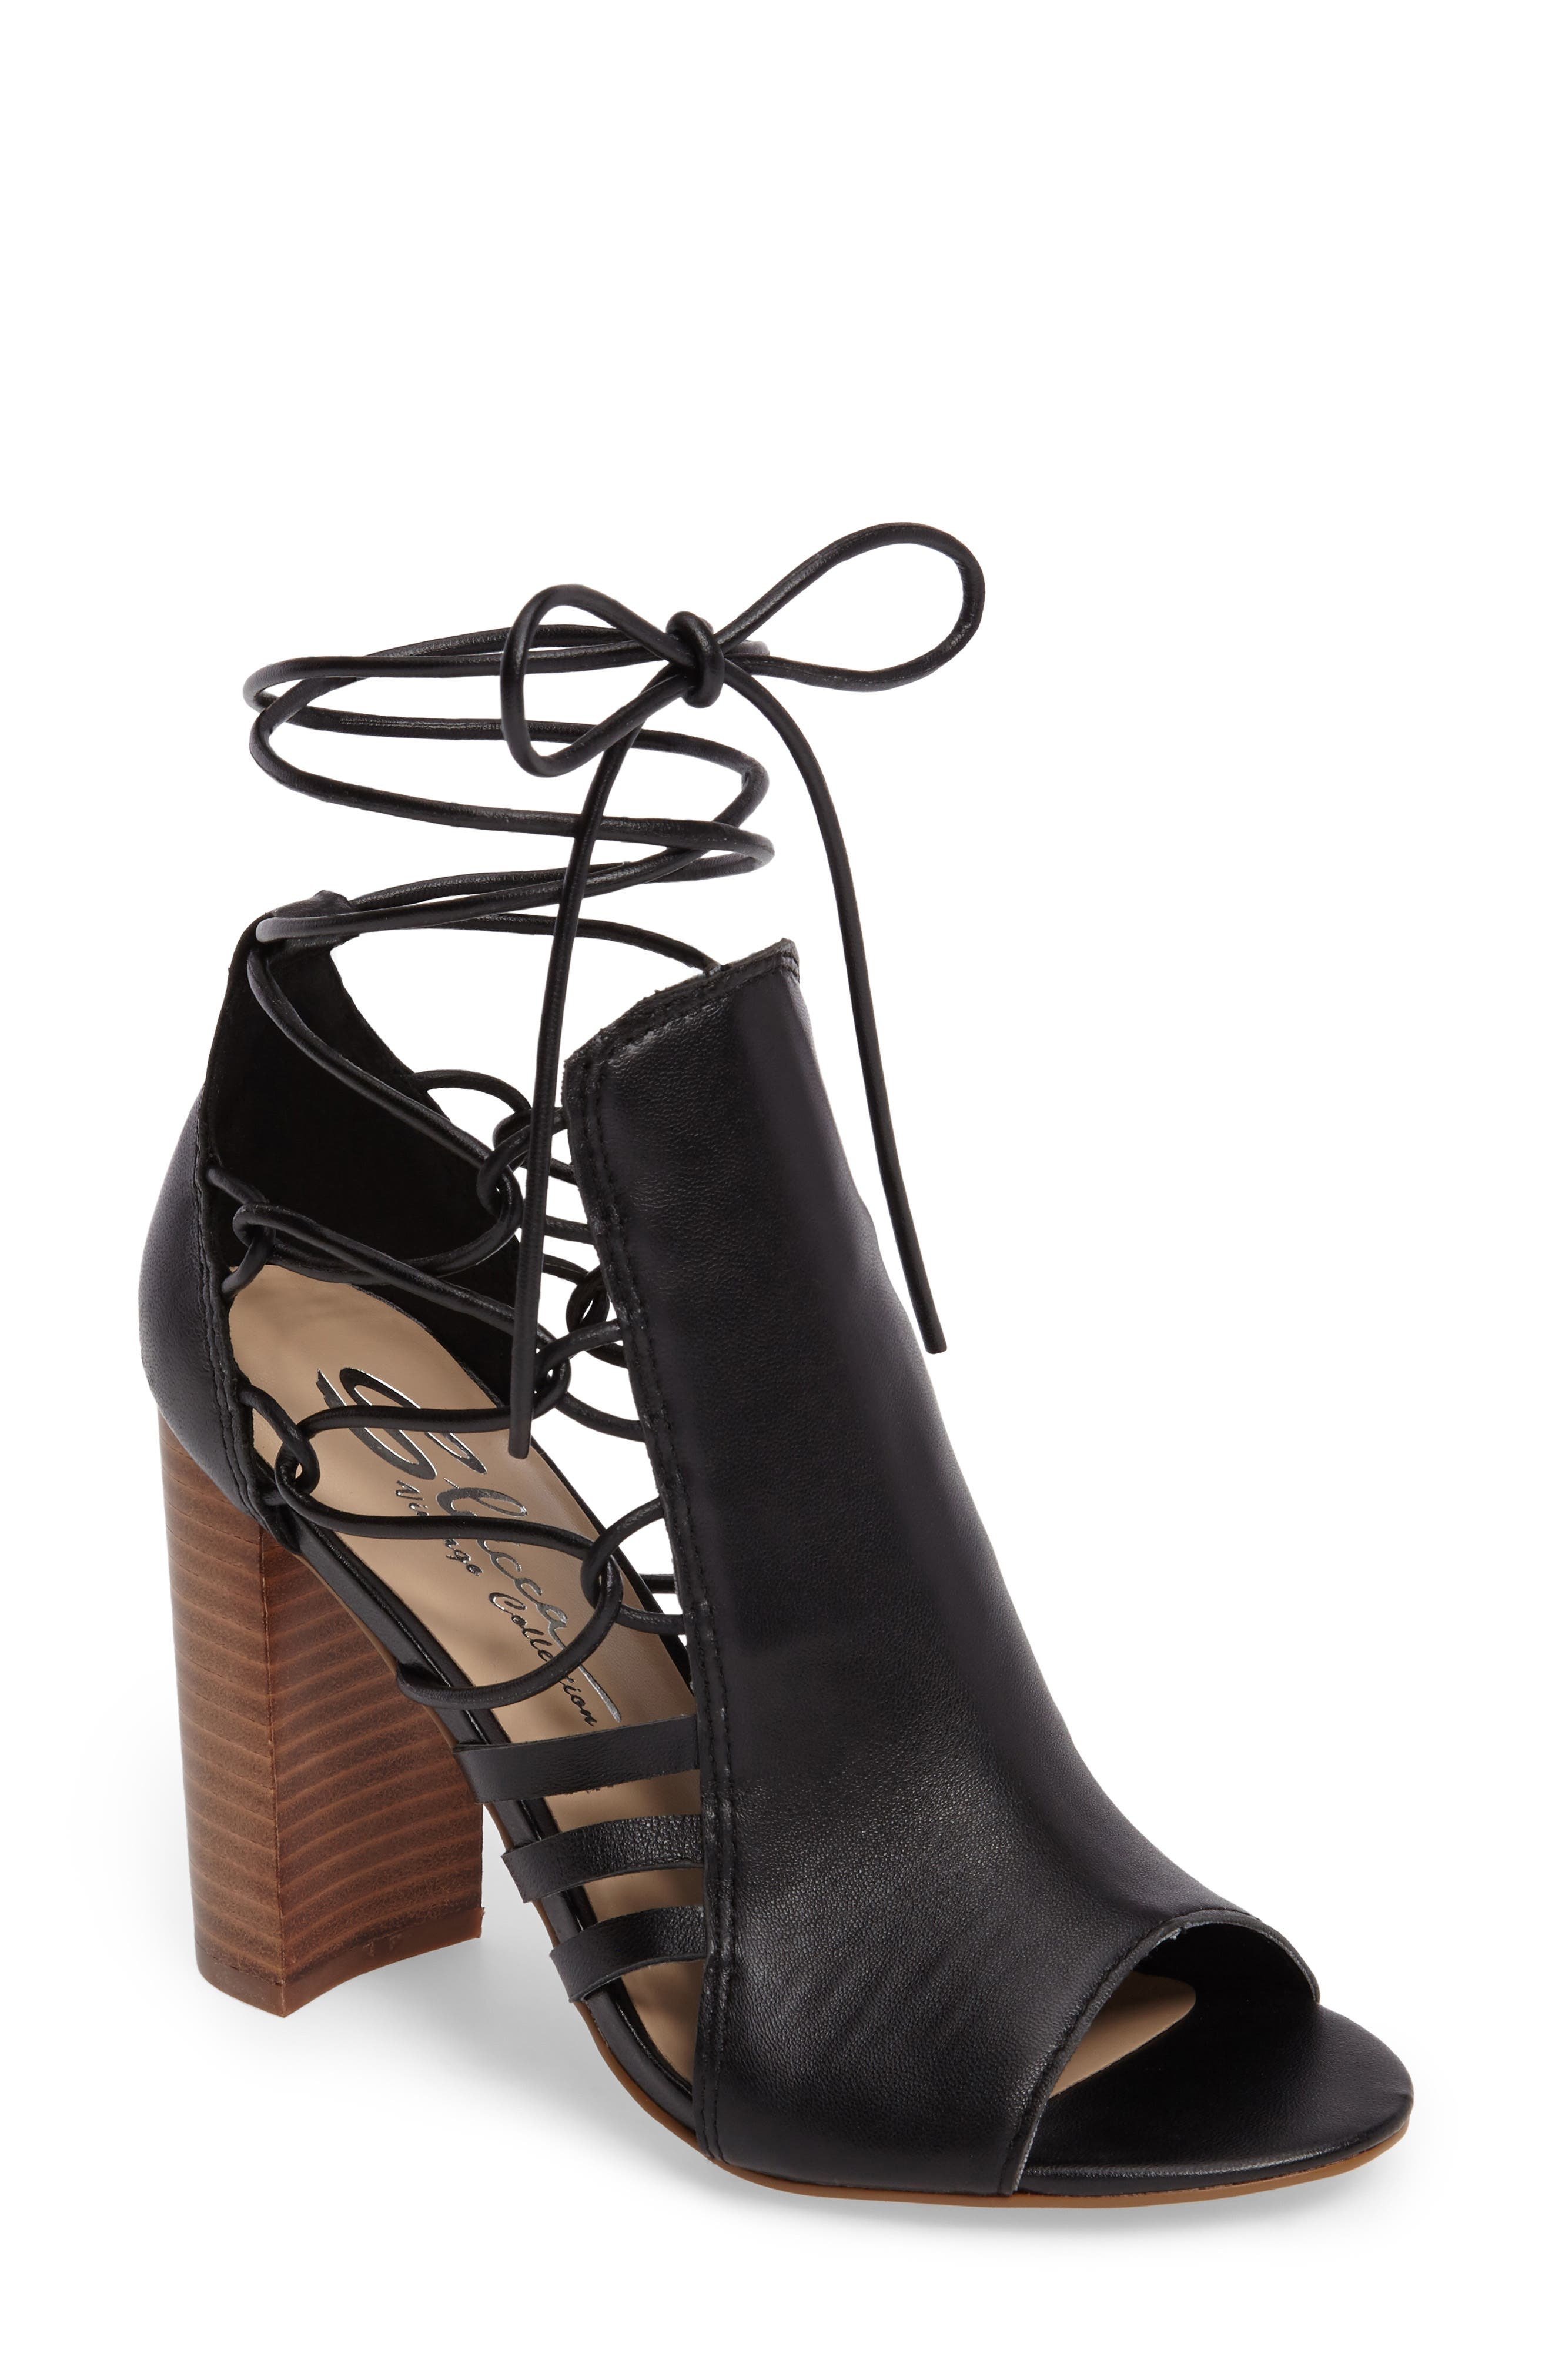 Main Image - Sbicca Adette Ankle Tie Sandal (Women)